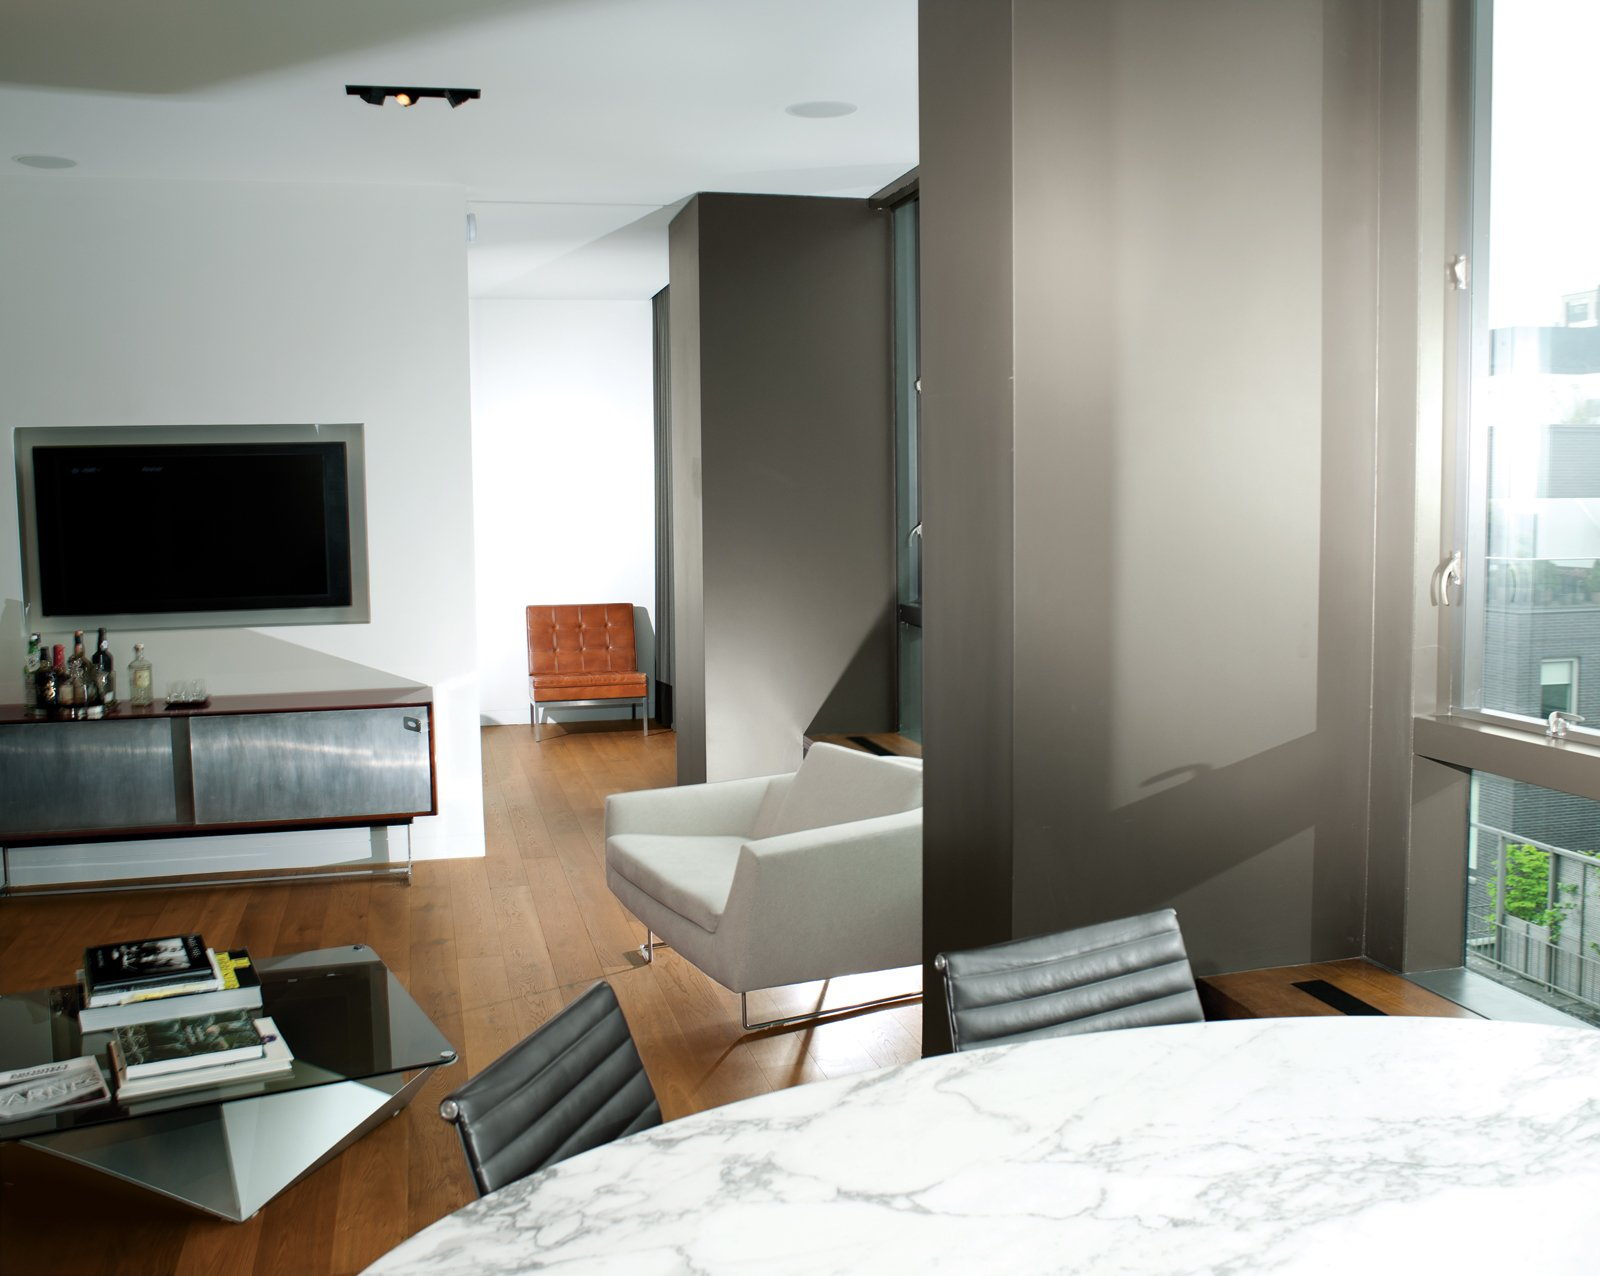 Living Room Architect Cass Calder Smith embarked on a gut renovation to join two apartments inside a SoHo building, resulting in a 1,600-square-foot residence. He redid the floors in oak and redesigned the wall of windows that frames views to the east.  Photo 5 of 14 in High-Rise Living in Manhattan